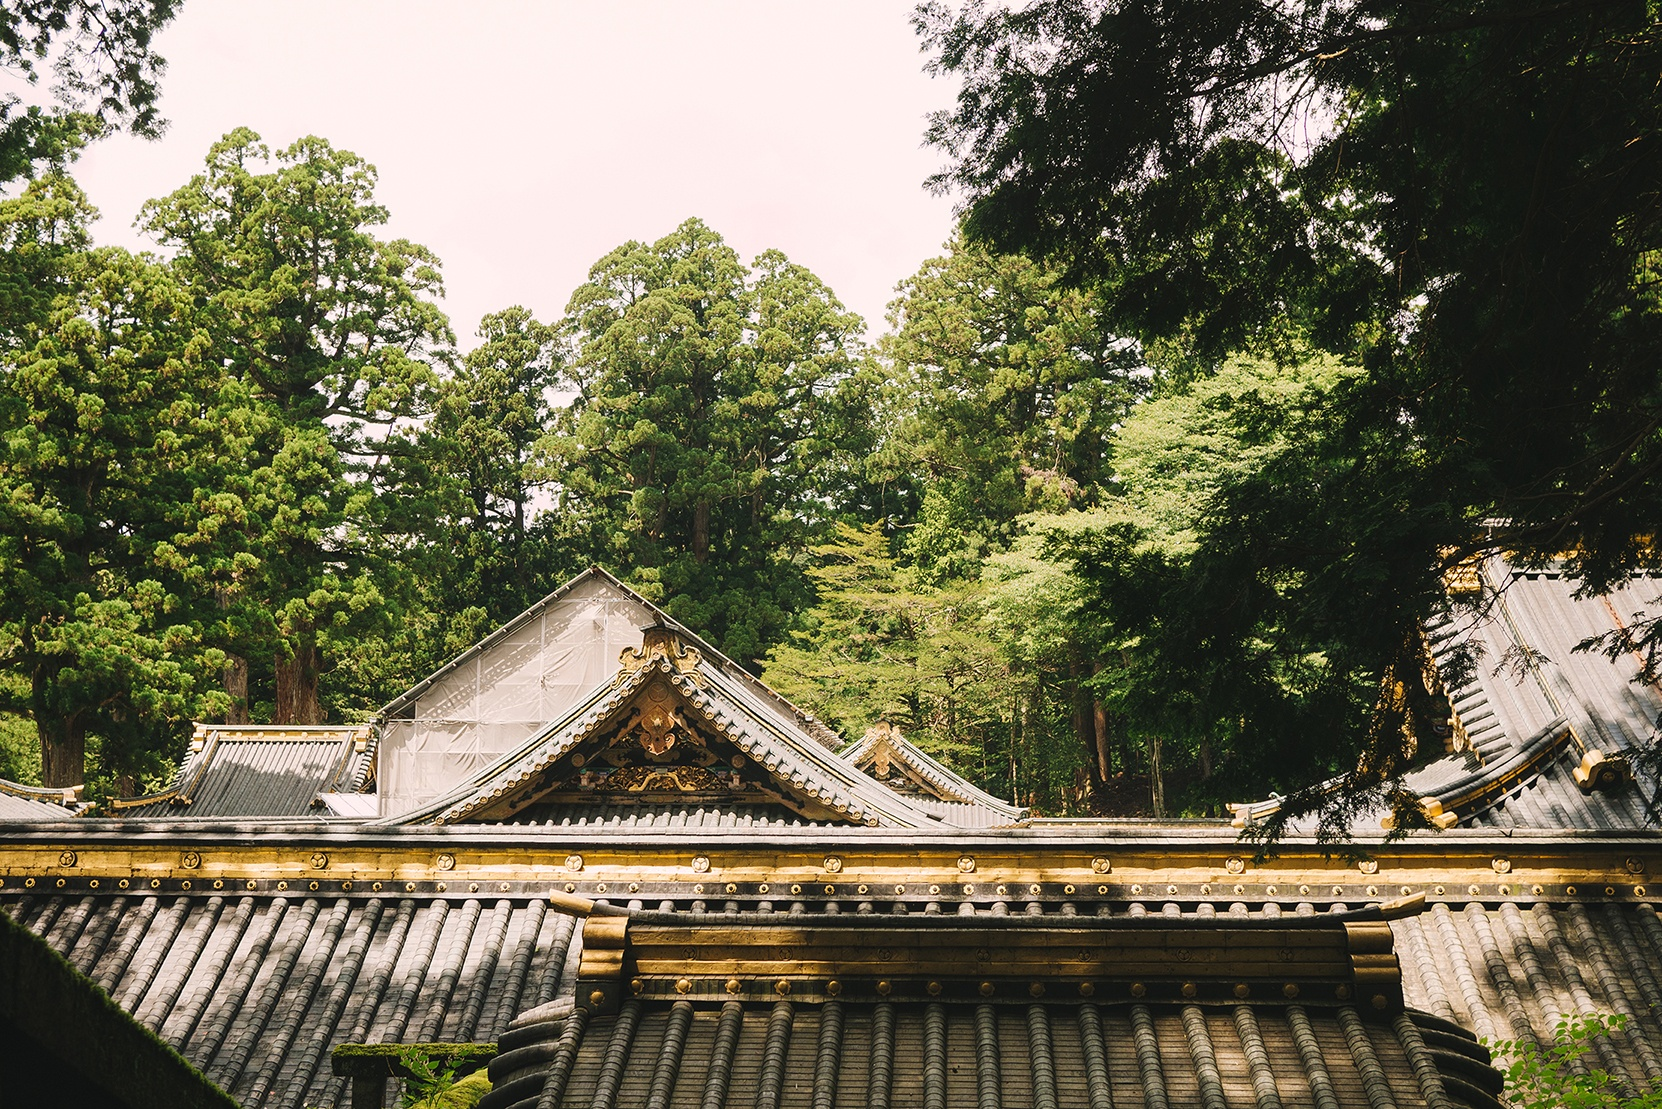 Nikko, temples and colors, feeding our creativity